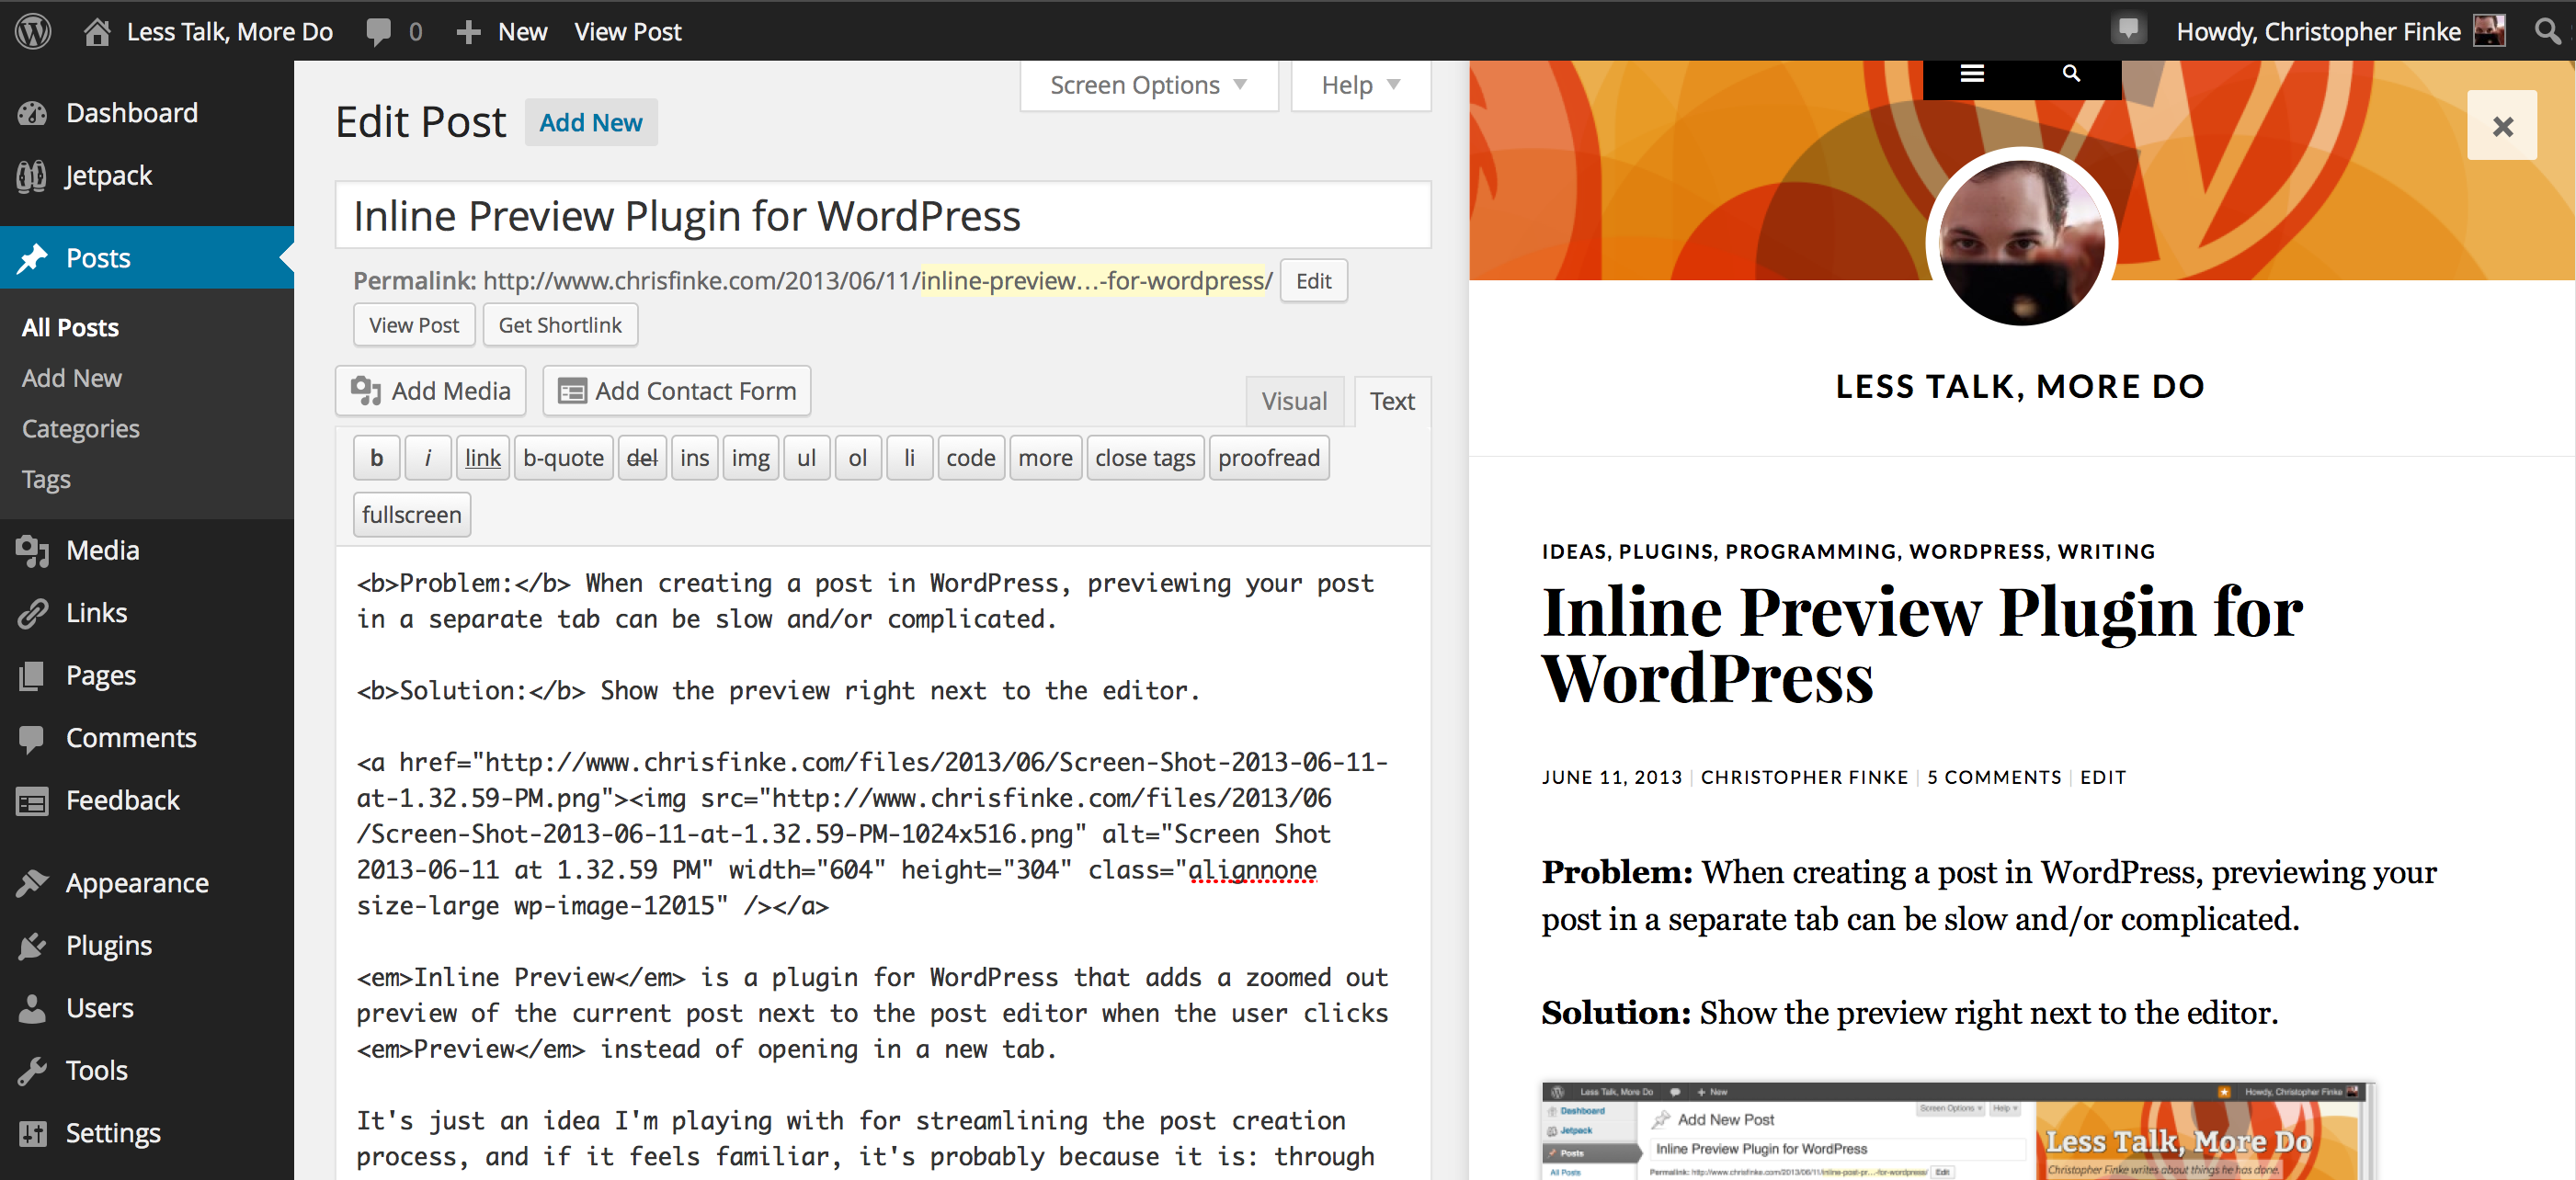 inline-preview screenshot 1